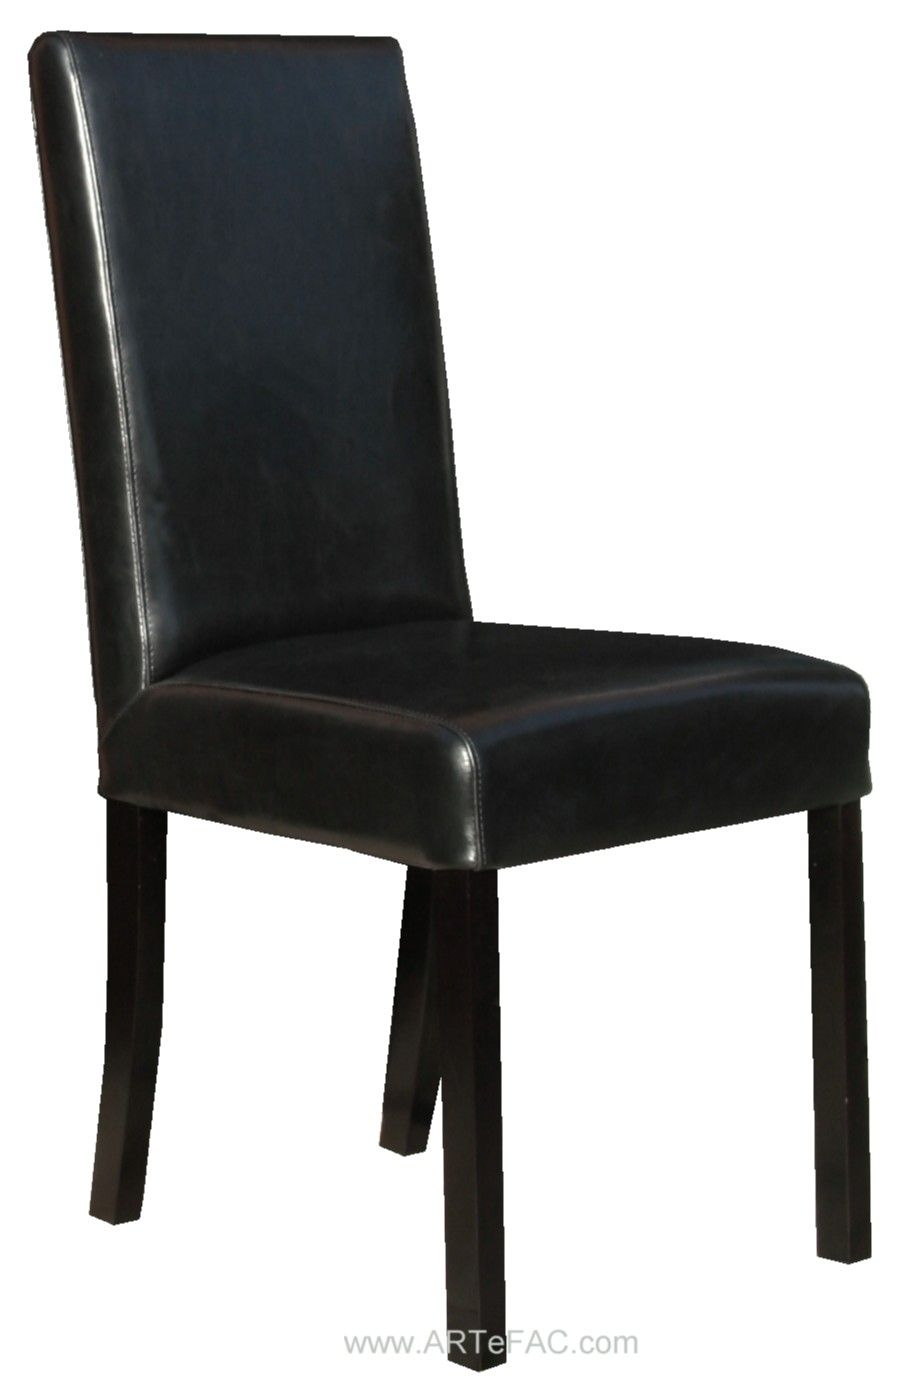 Drop Dead Gorgeous Black Leather Dining Room Chairs